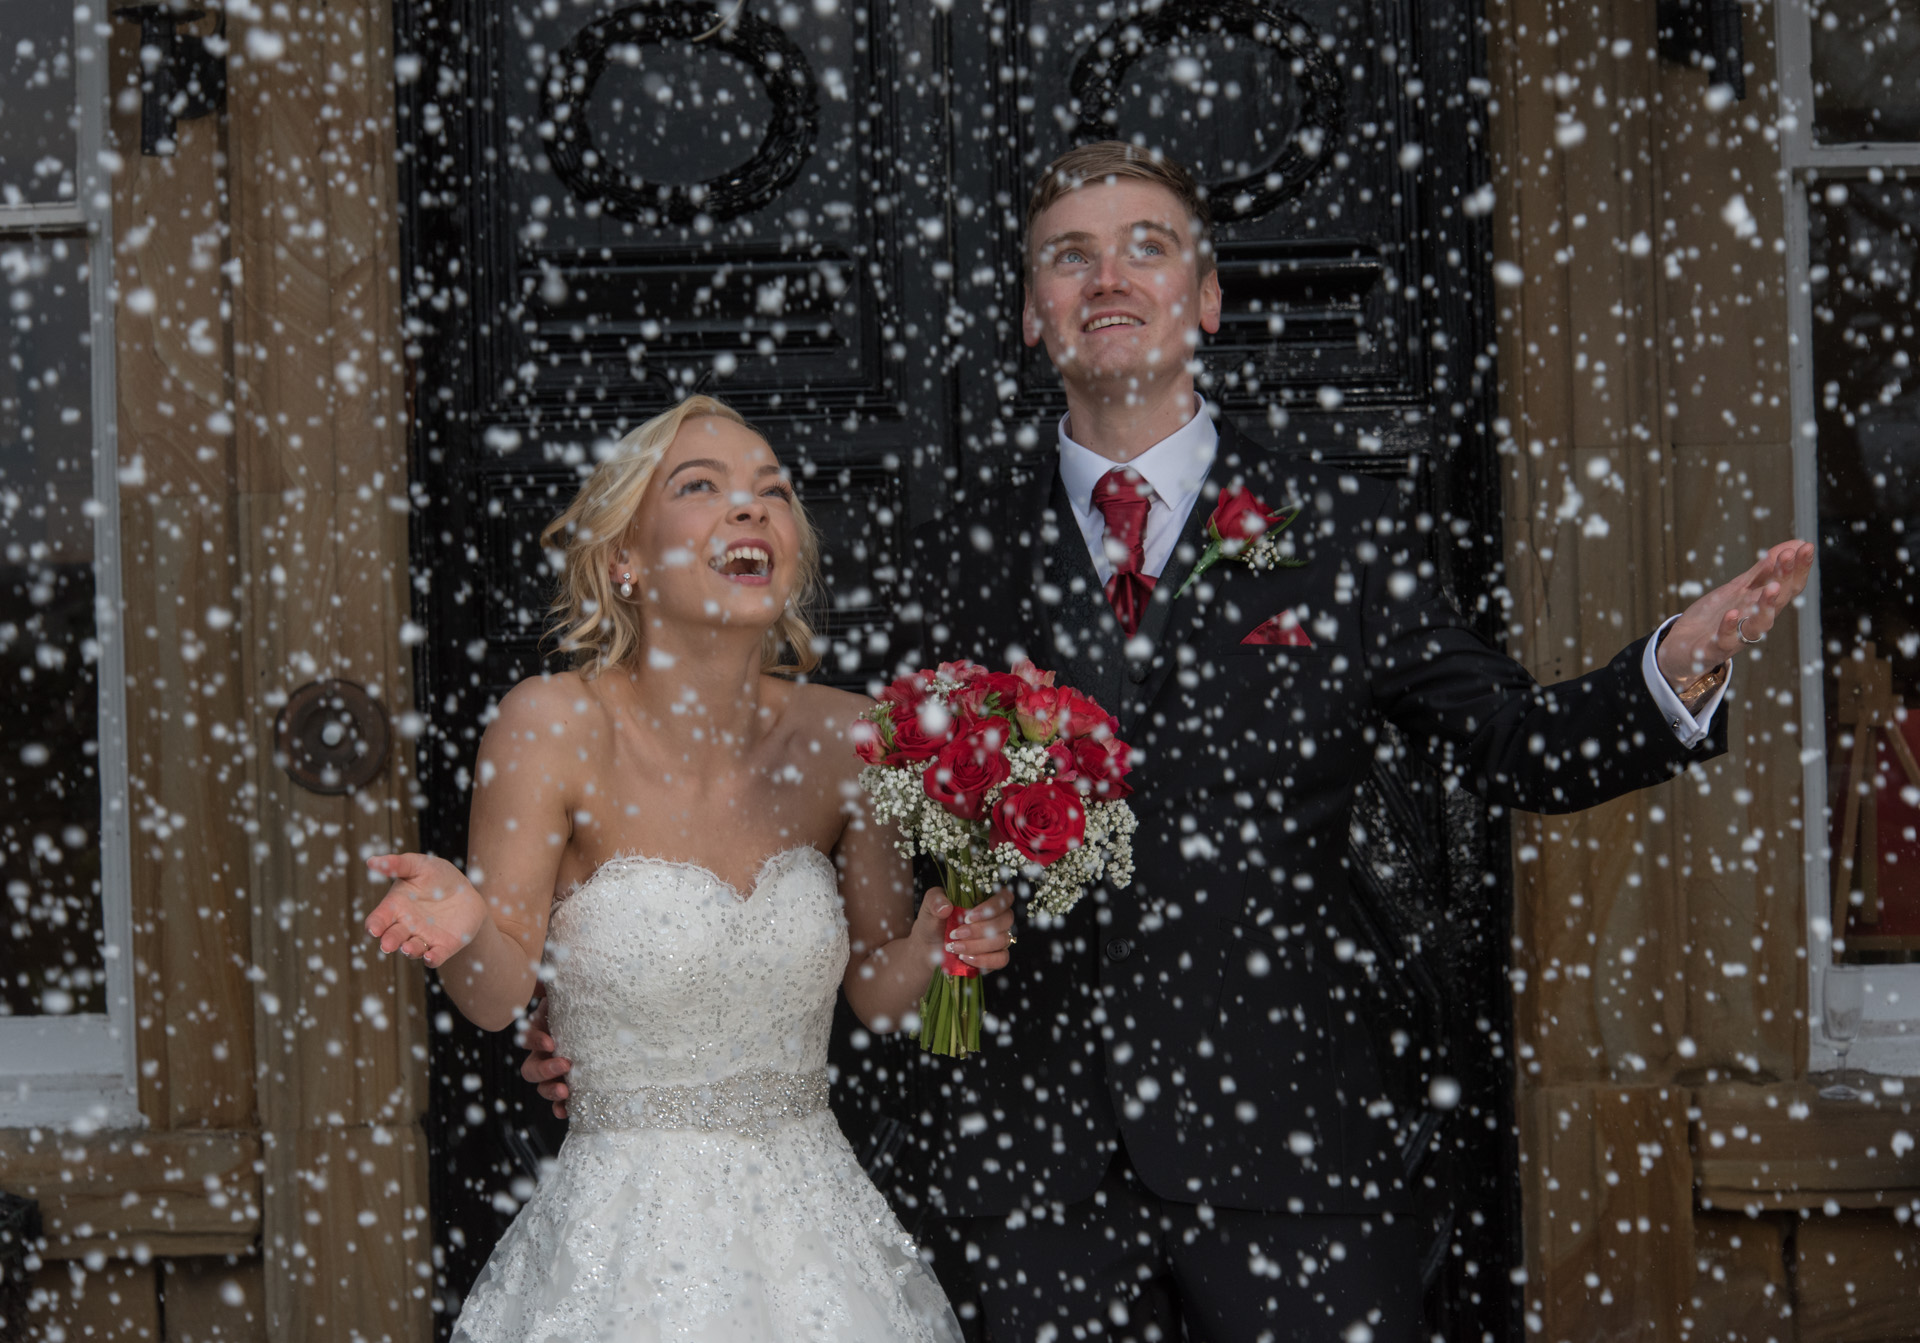 Special offer: Winter weddings for £499 1